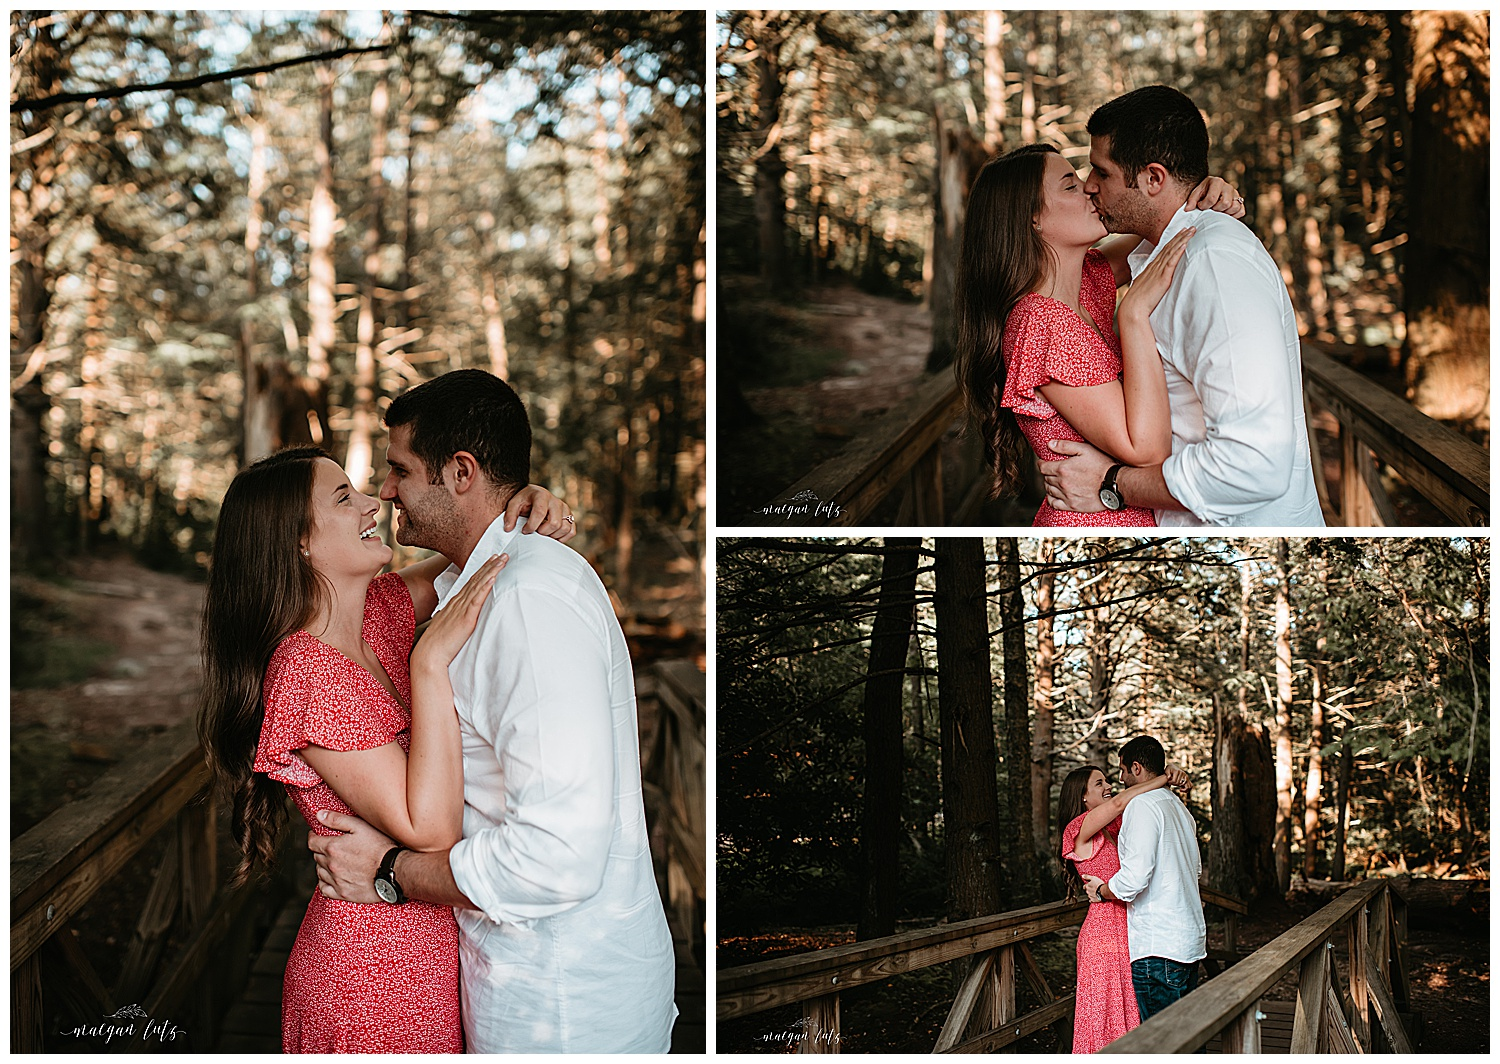 NEPA-Mount-Pocono-Lehigh-Valley-Wedding-Engagement-photographer-at-Hickory-Run-State-Park-Whitehaven-PA_0001.jpg